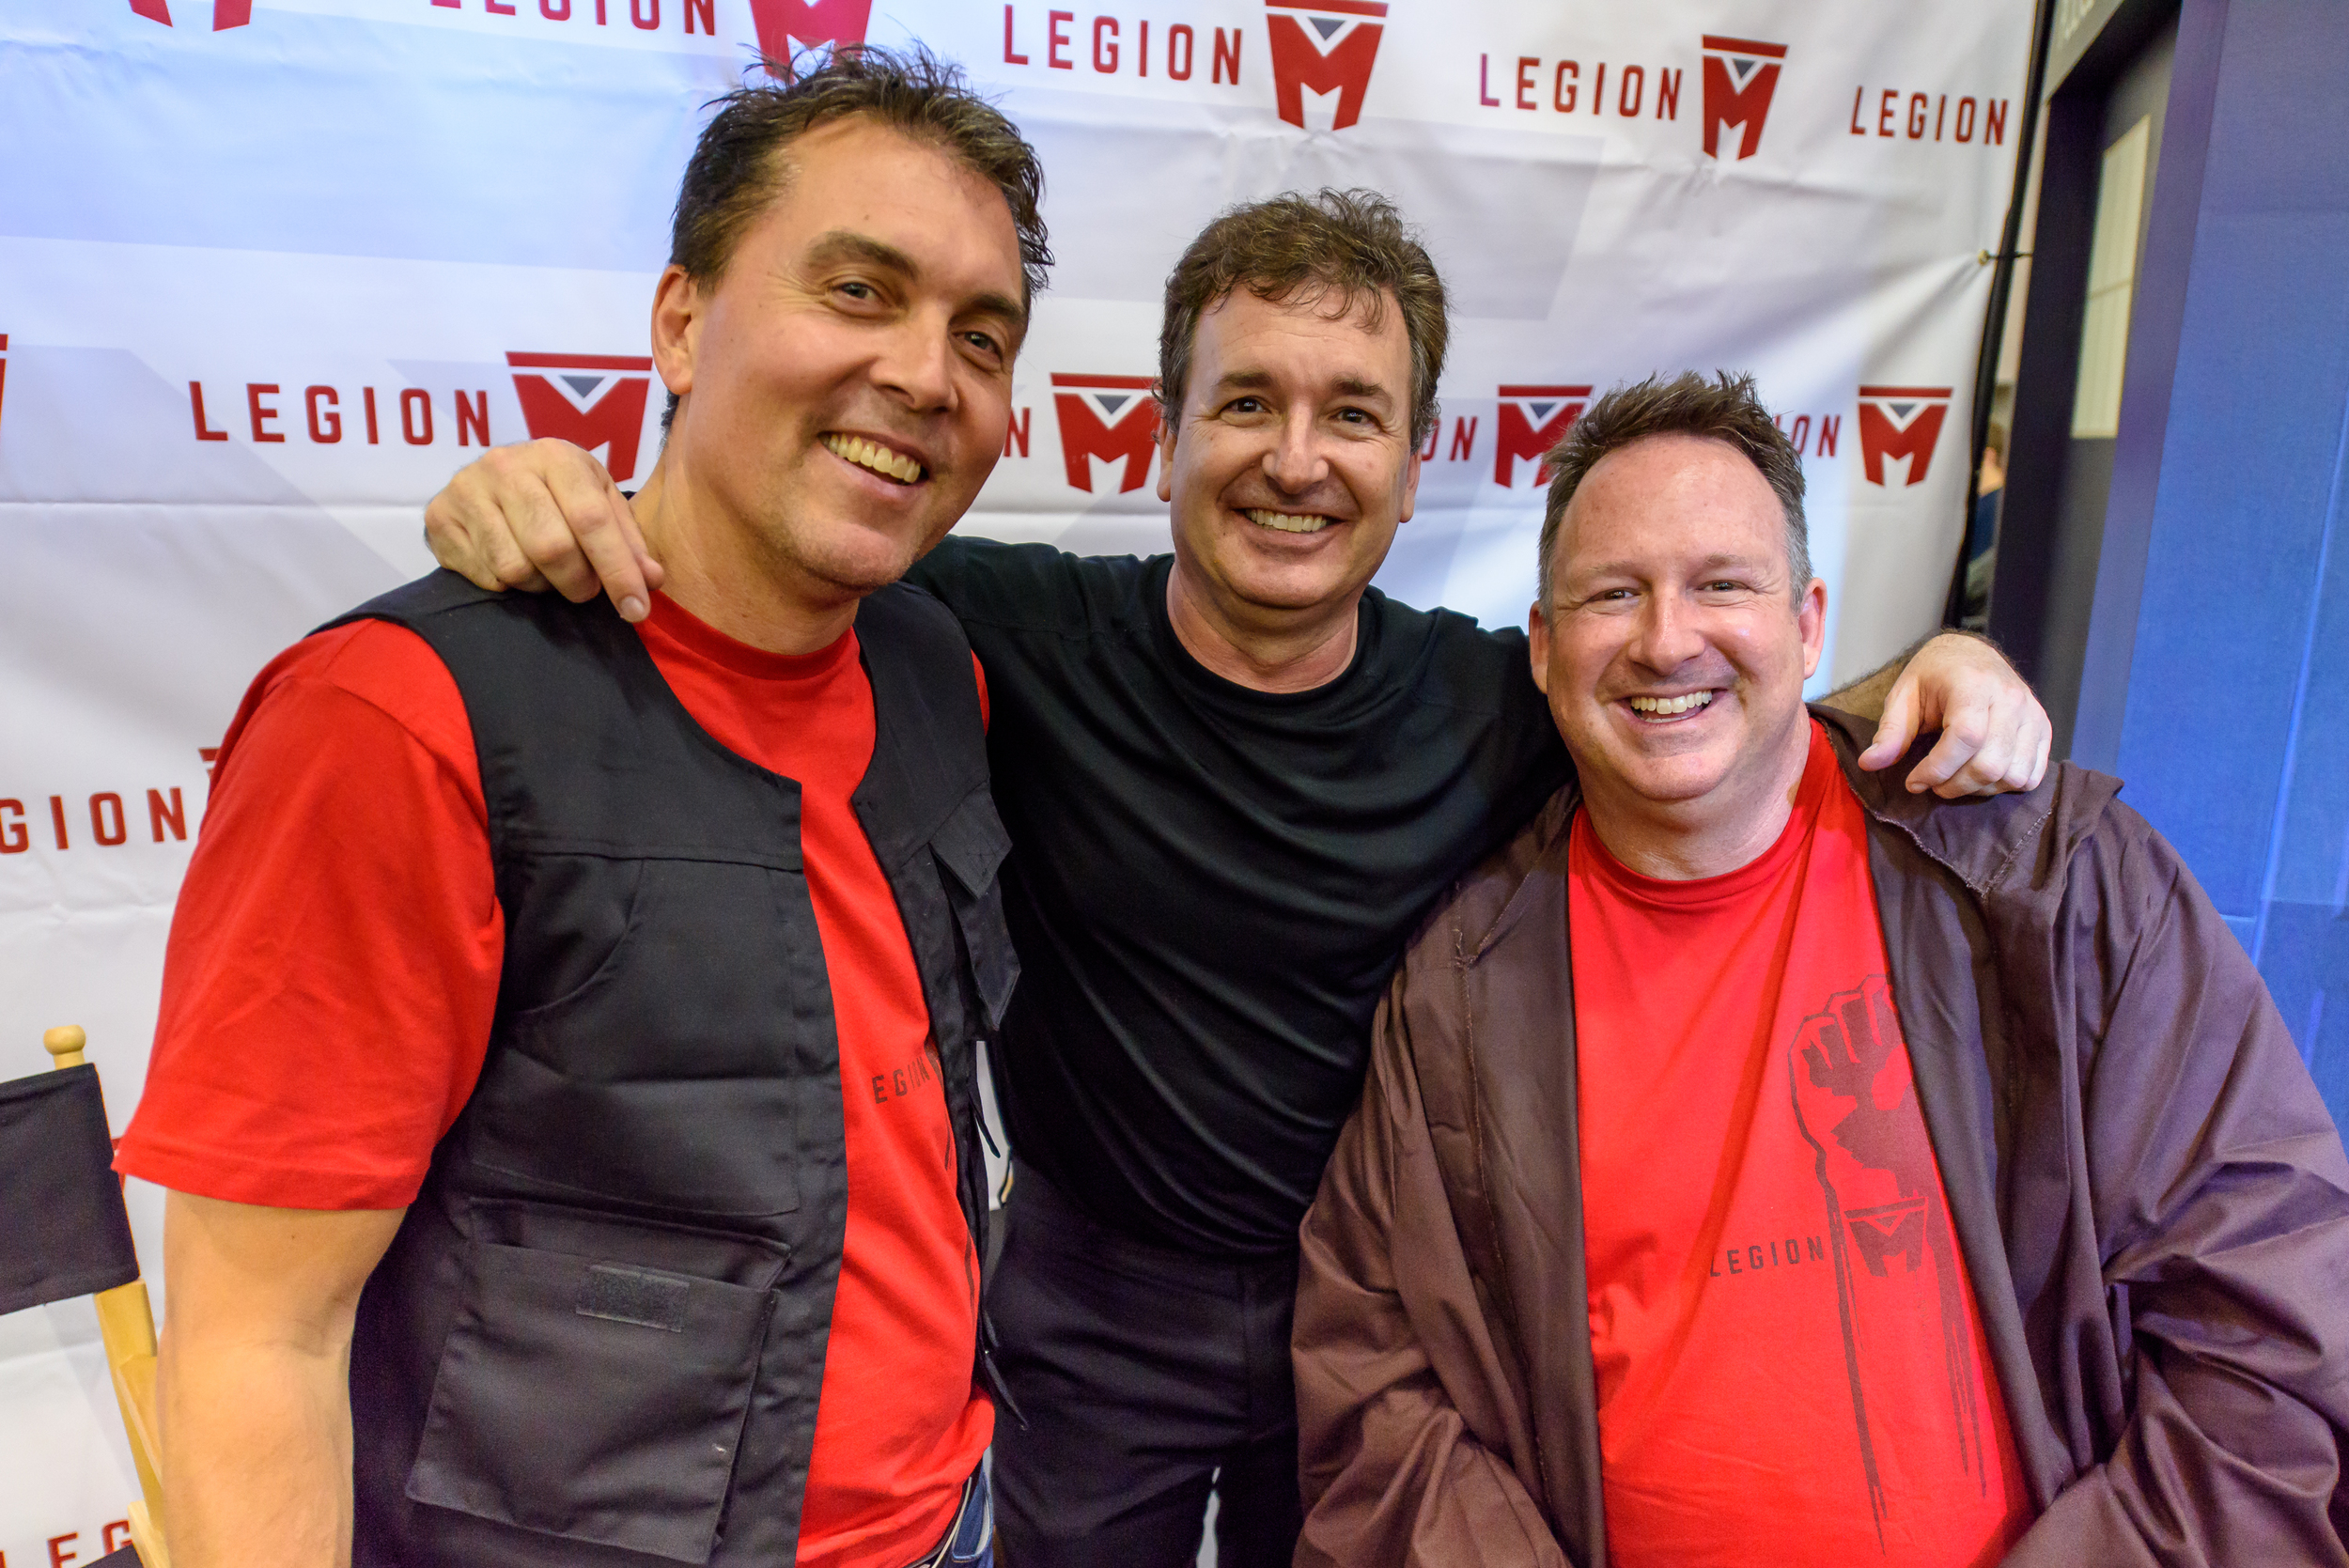 Special thank you to  Jeff Bartee Photography , for all the amazing photography, and for sharing it for FREE with Legion M and everybody at the show.